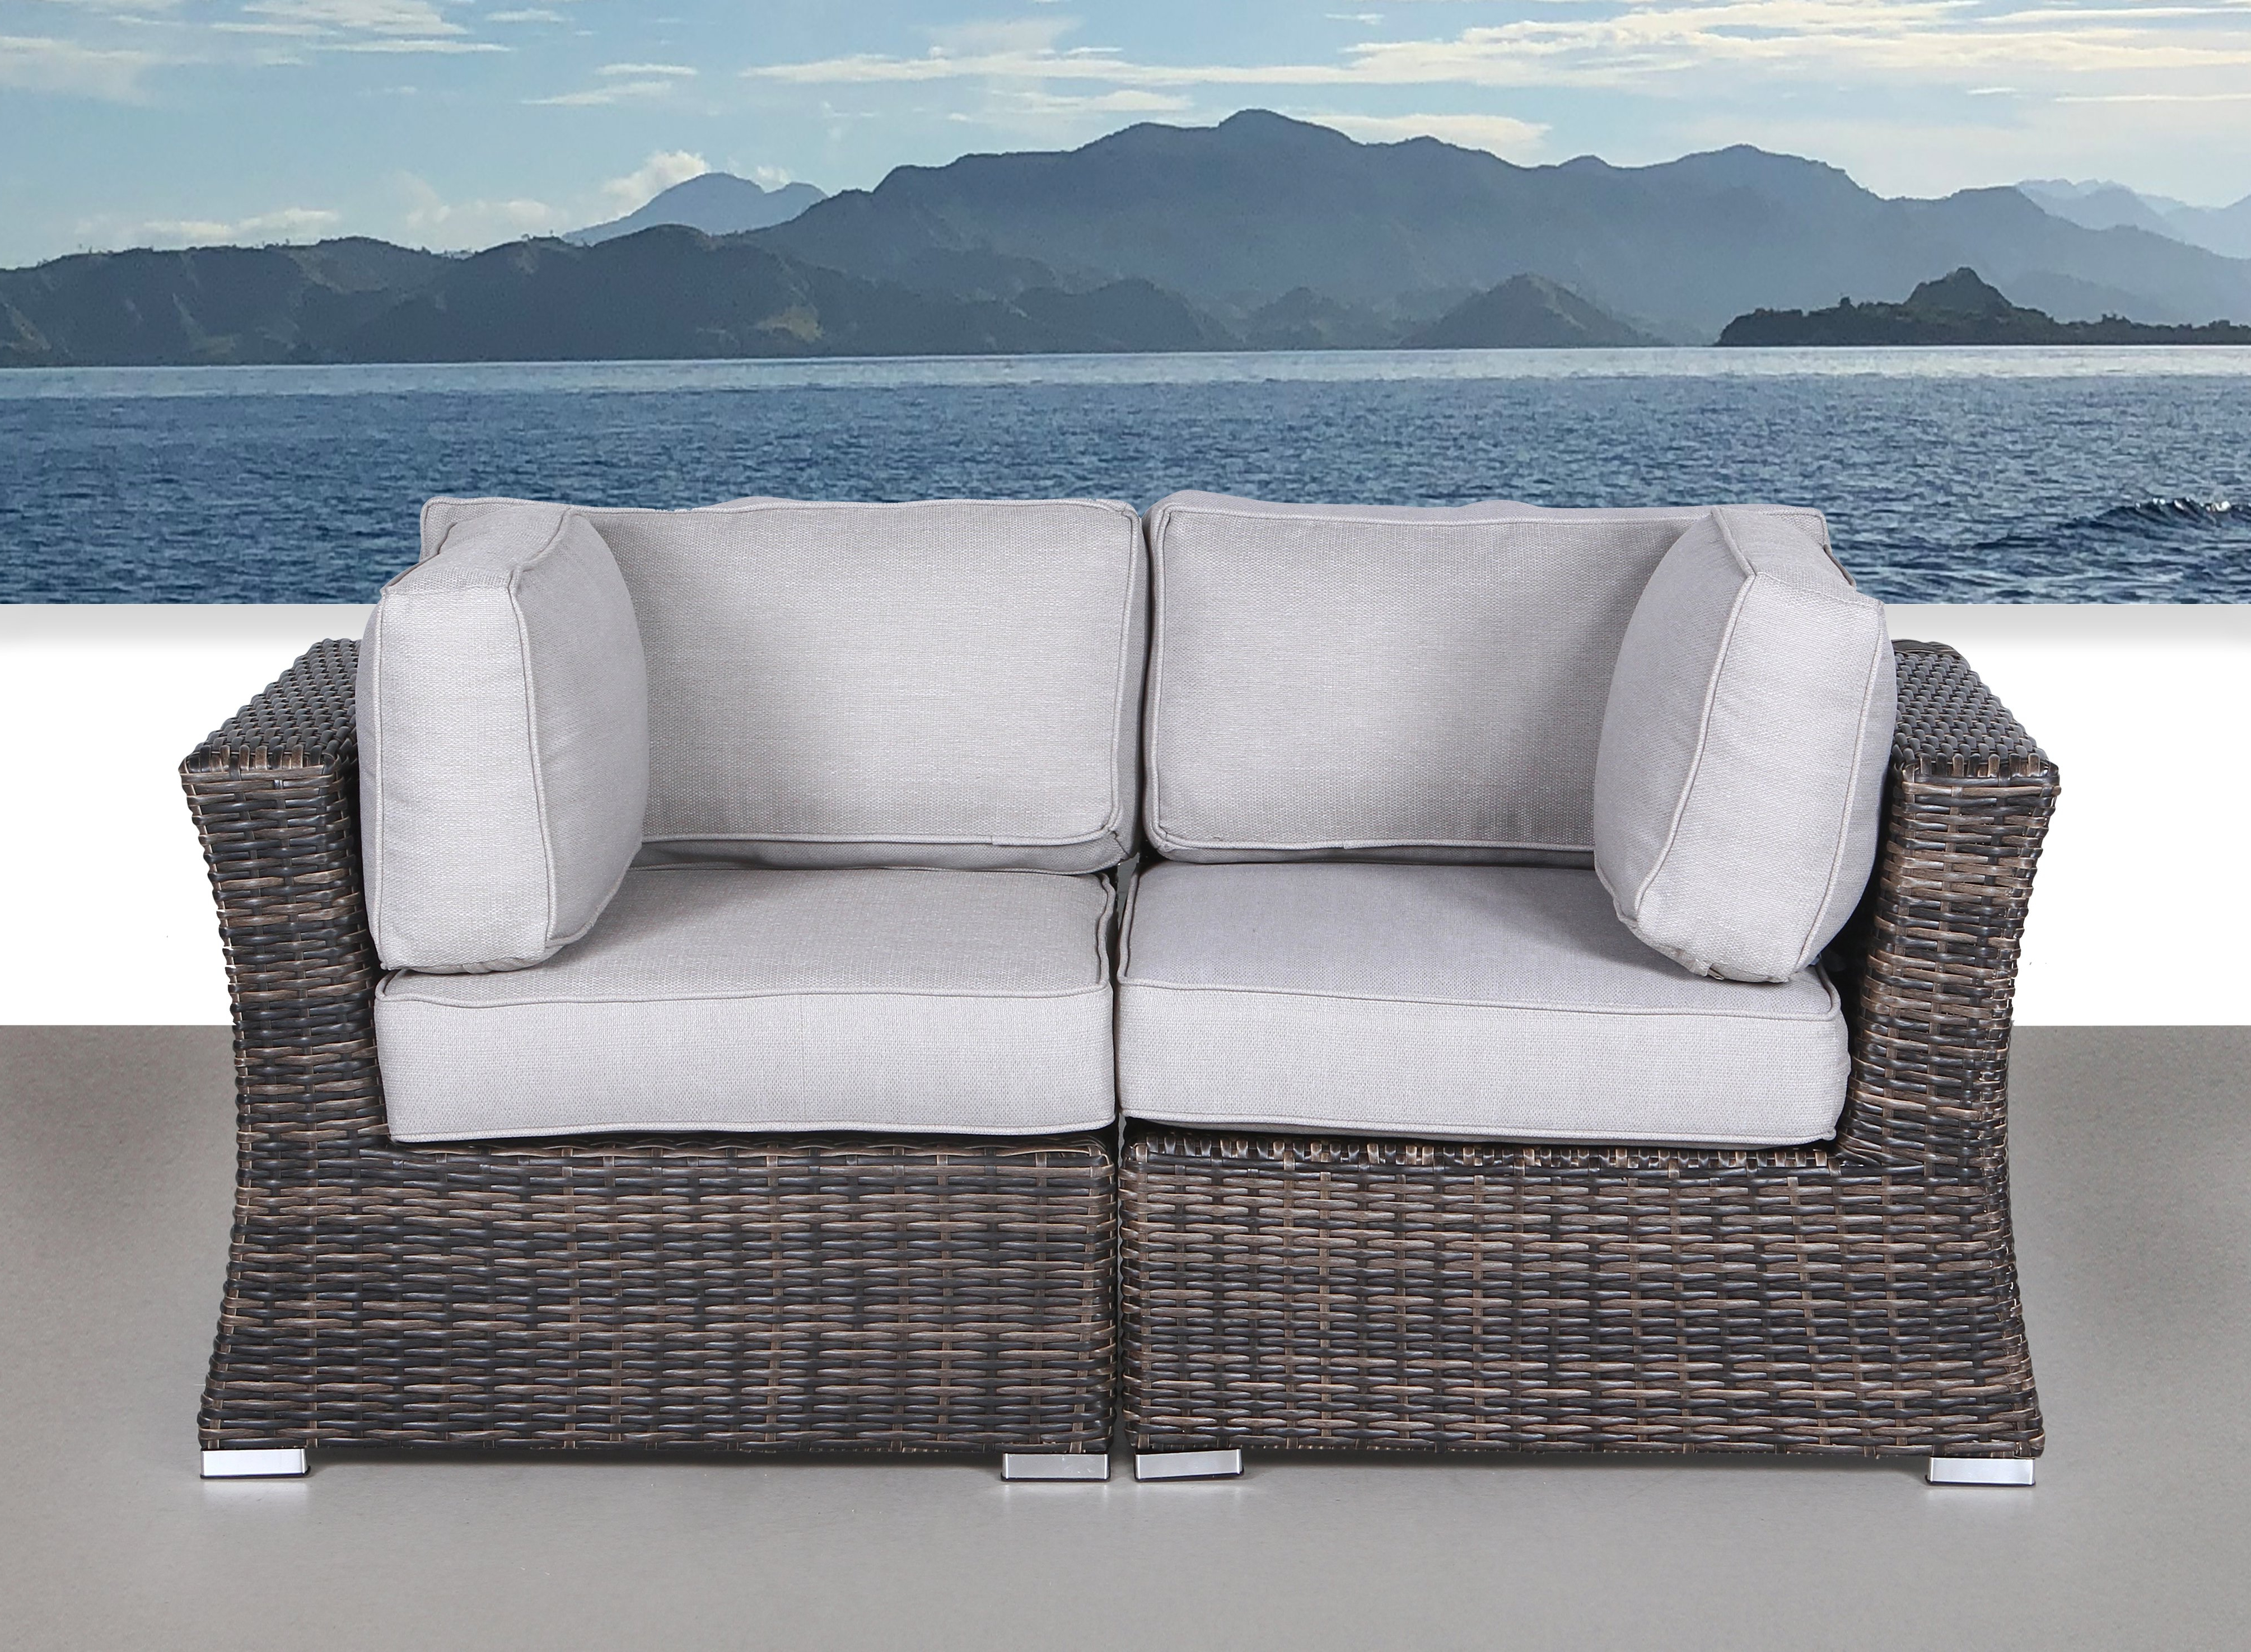 Famous Huddleson Contemporary Loveseat With Cushion In Huddleson Loveseats With Cushion (View 5 of 20)